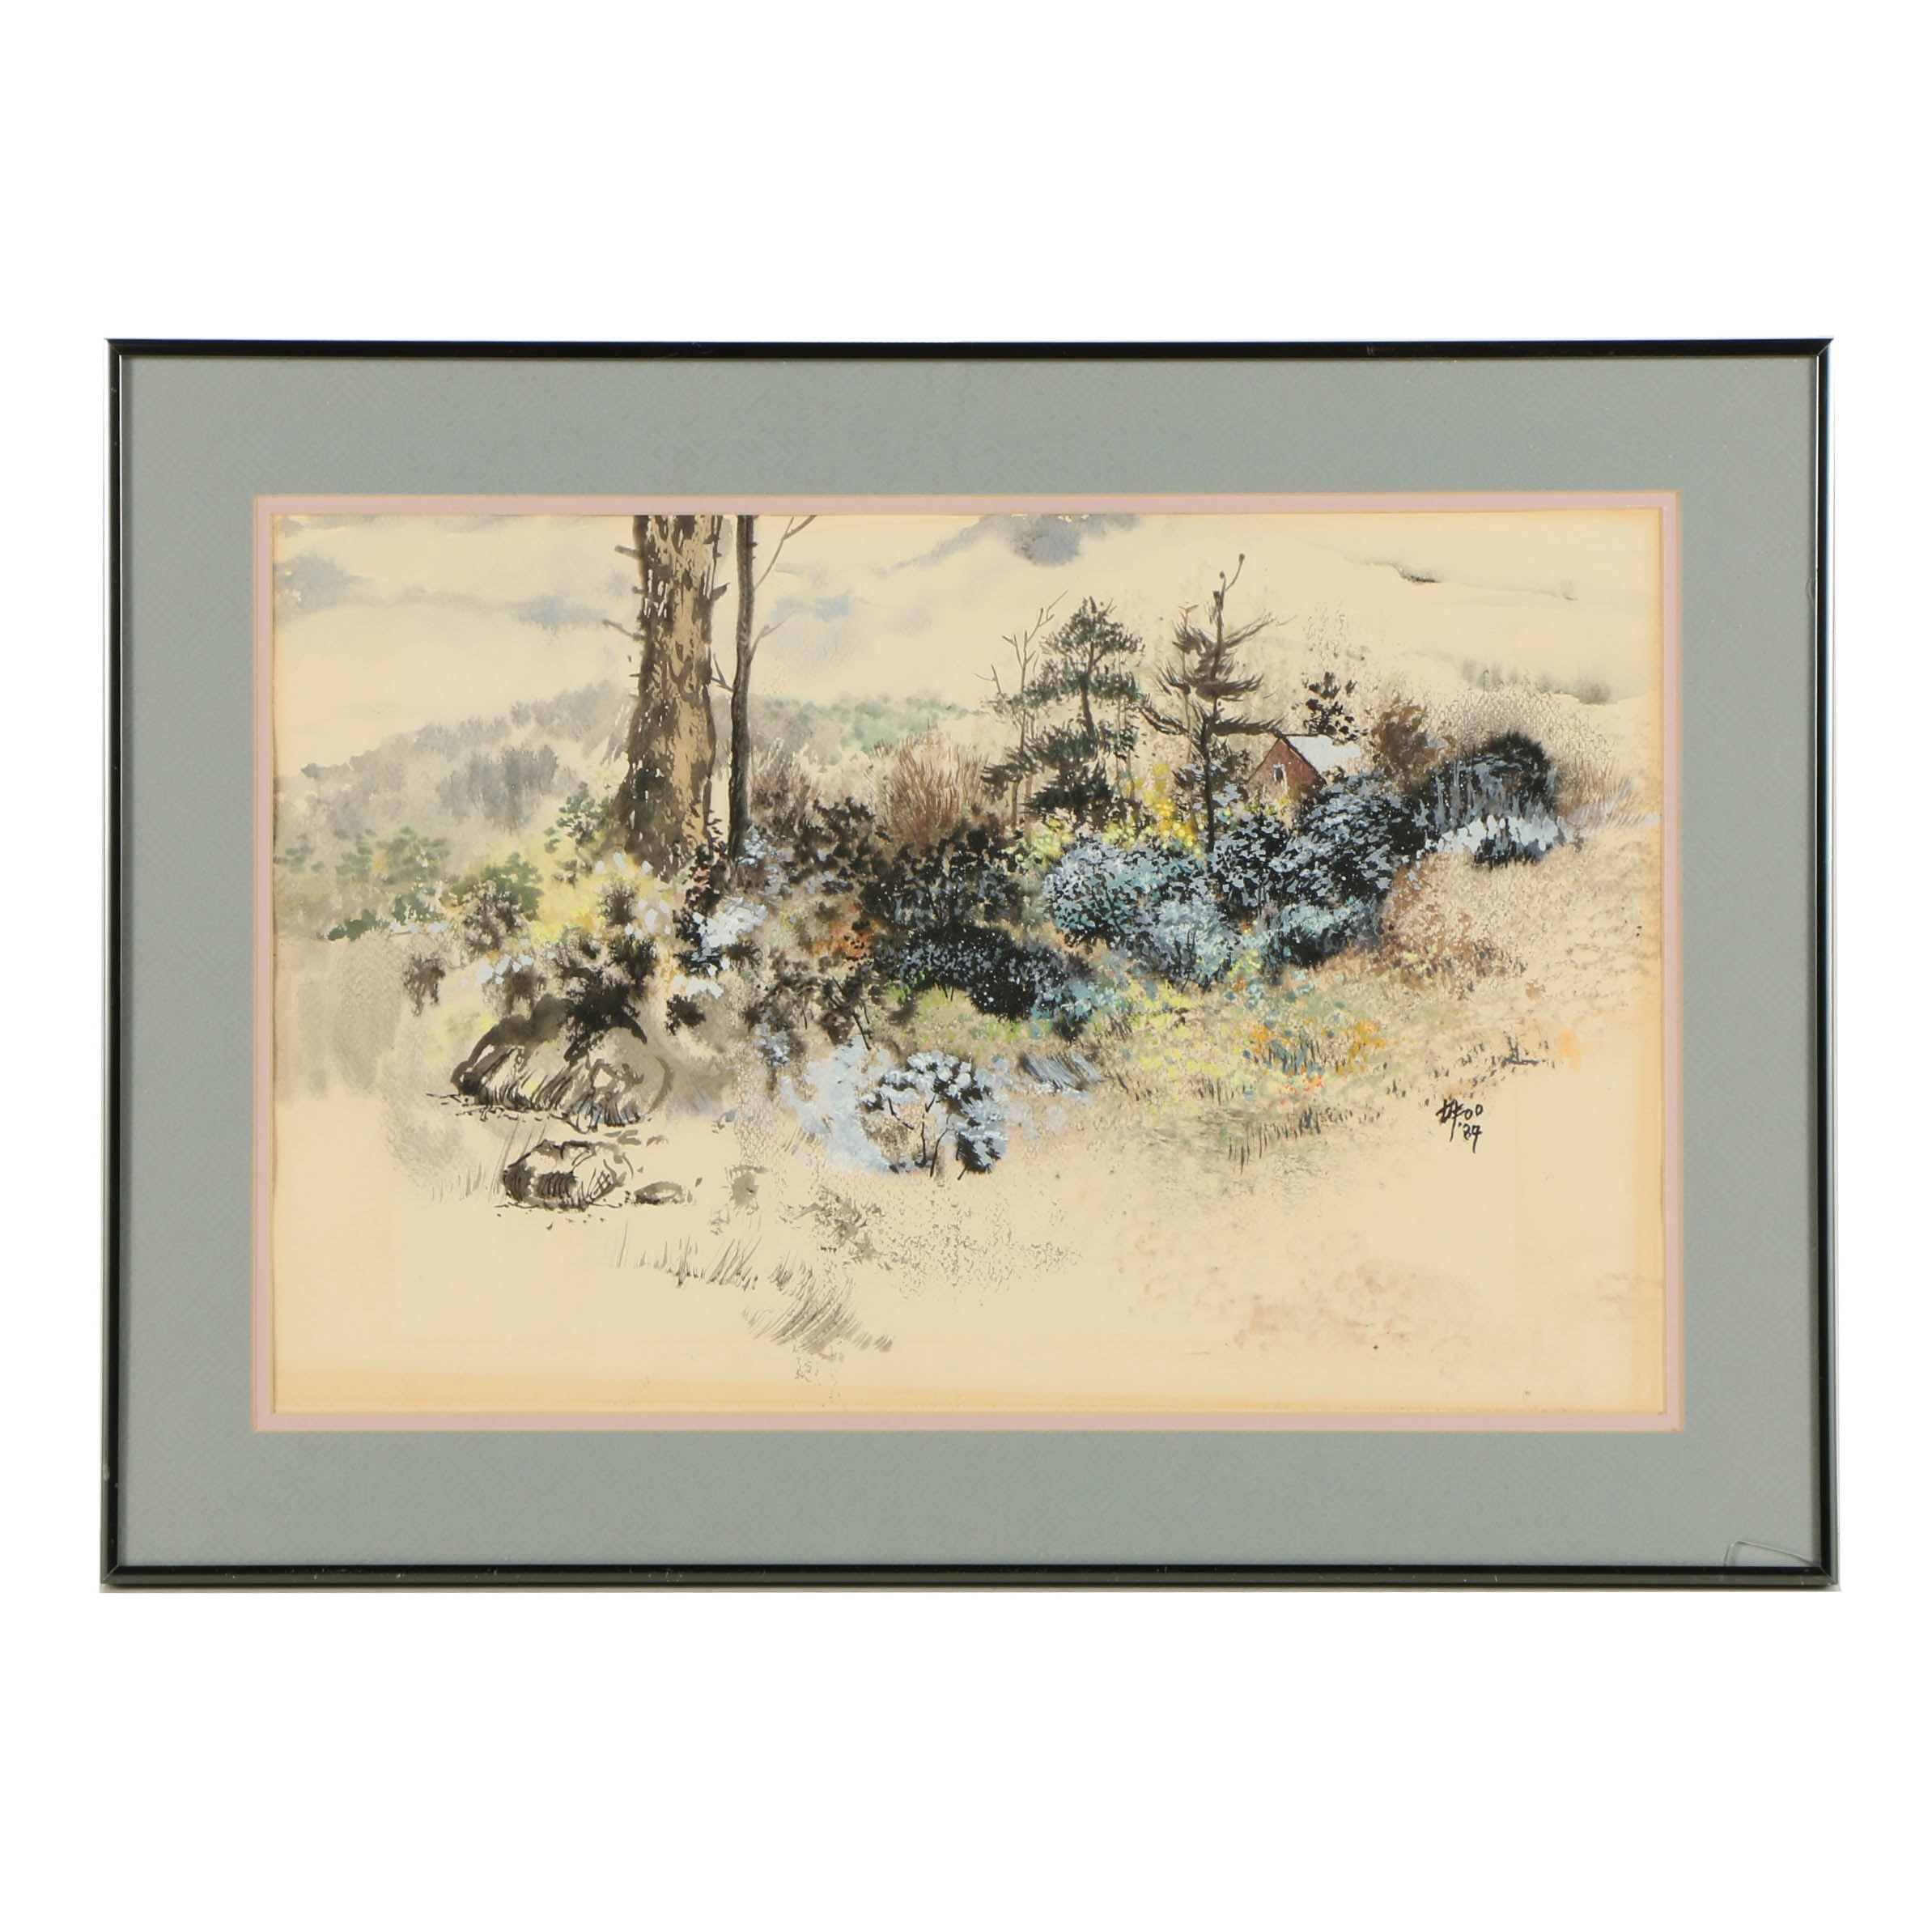 Hong Foo Ink and Watercolor Illustration on Paper of Cabin in Wooded Landscape